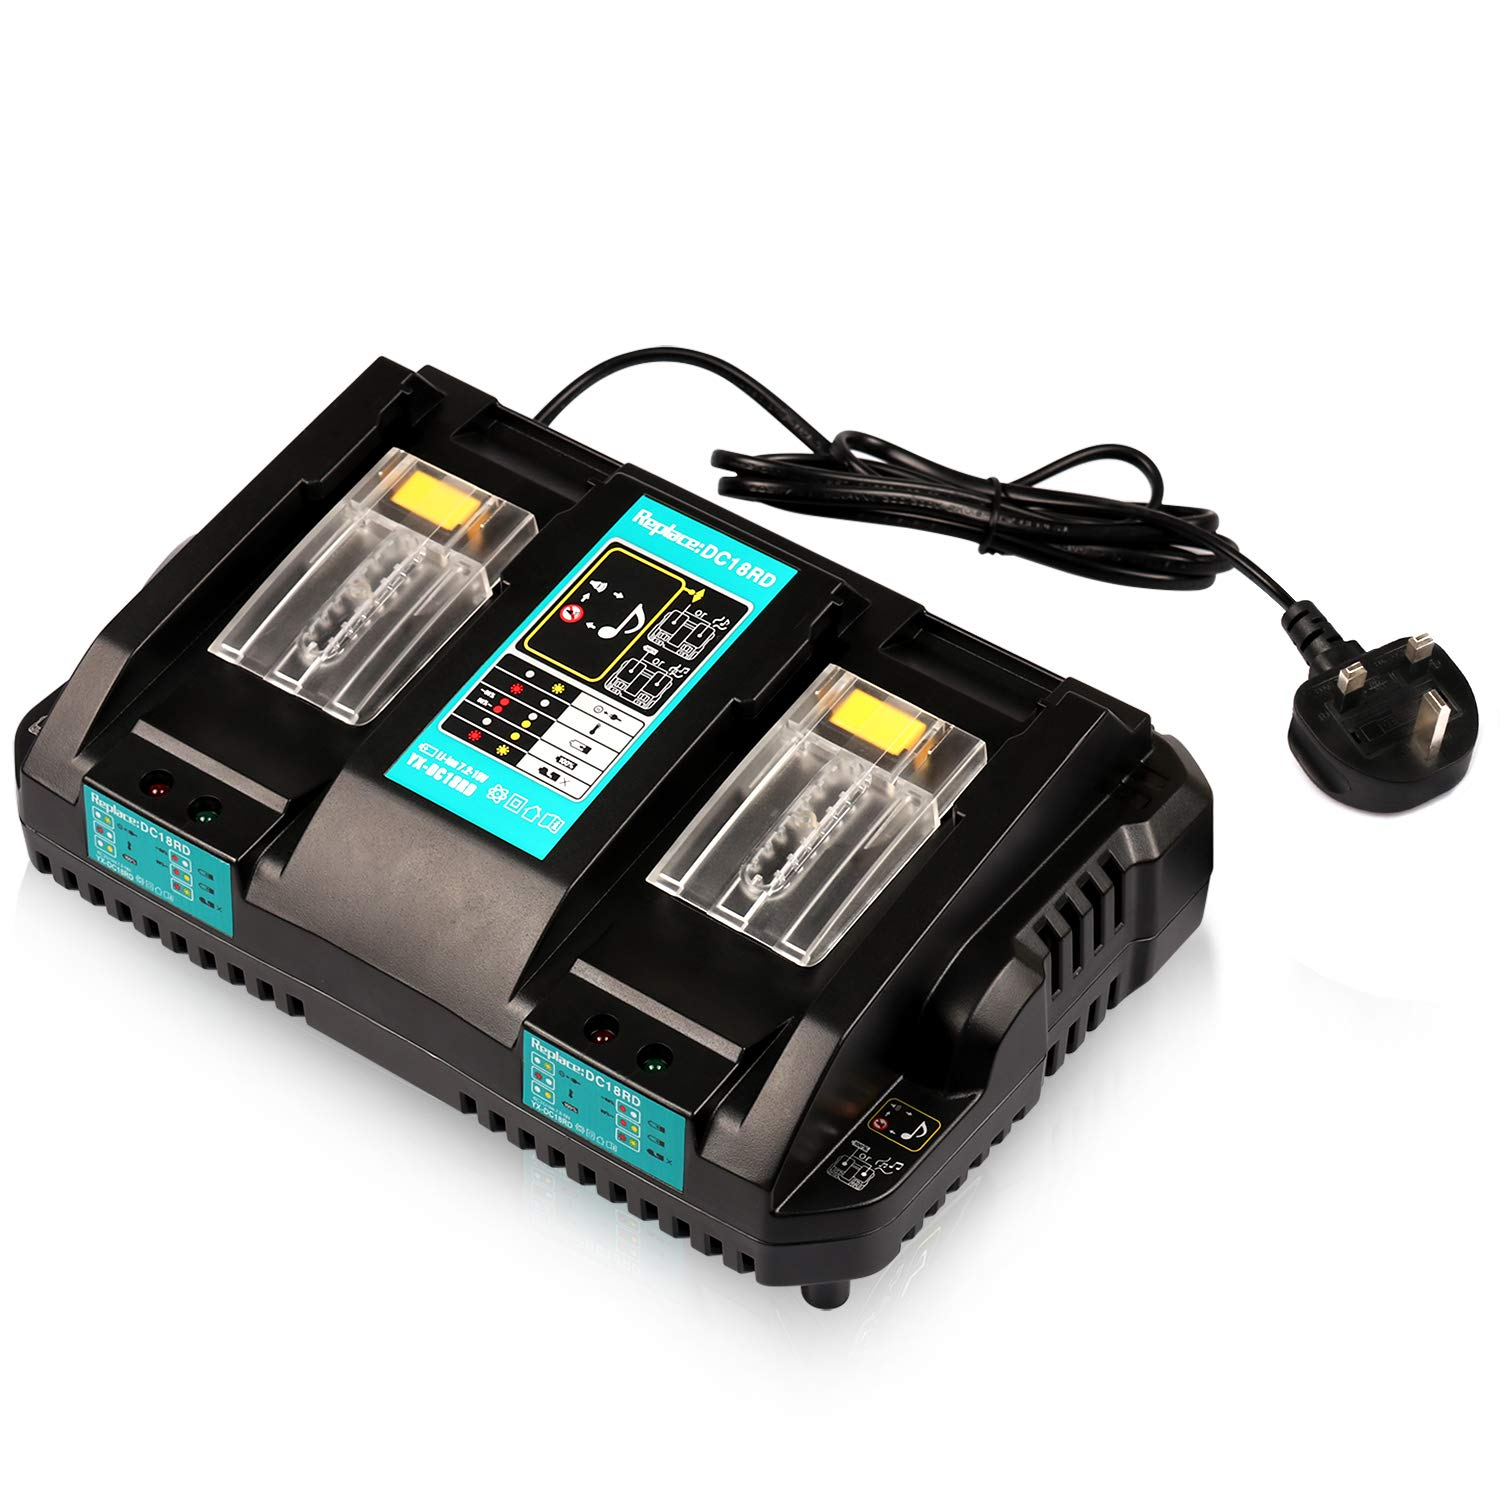 Batteriol Makita 18V Battery Charger DC18RD Dual Ports Rapid Charge 4A 120W for Makita Lithium-Ion Battery BL1830 BL1840 BL1850 BL1850B BL1860 BL1415 BL1430, Replace DC18RC DC18SF DC18RT